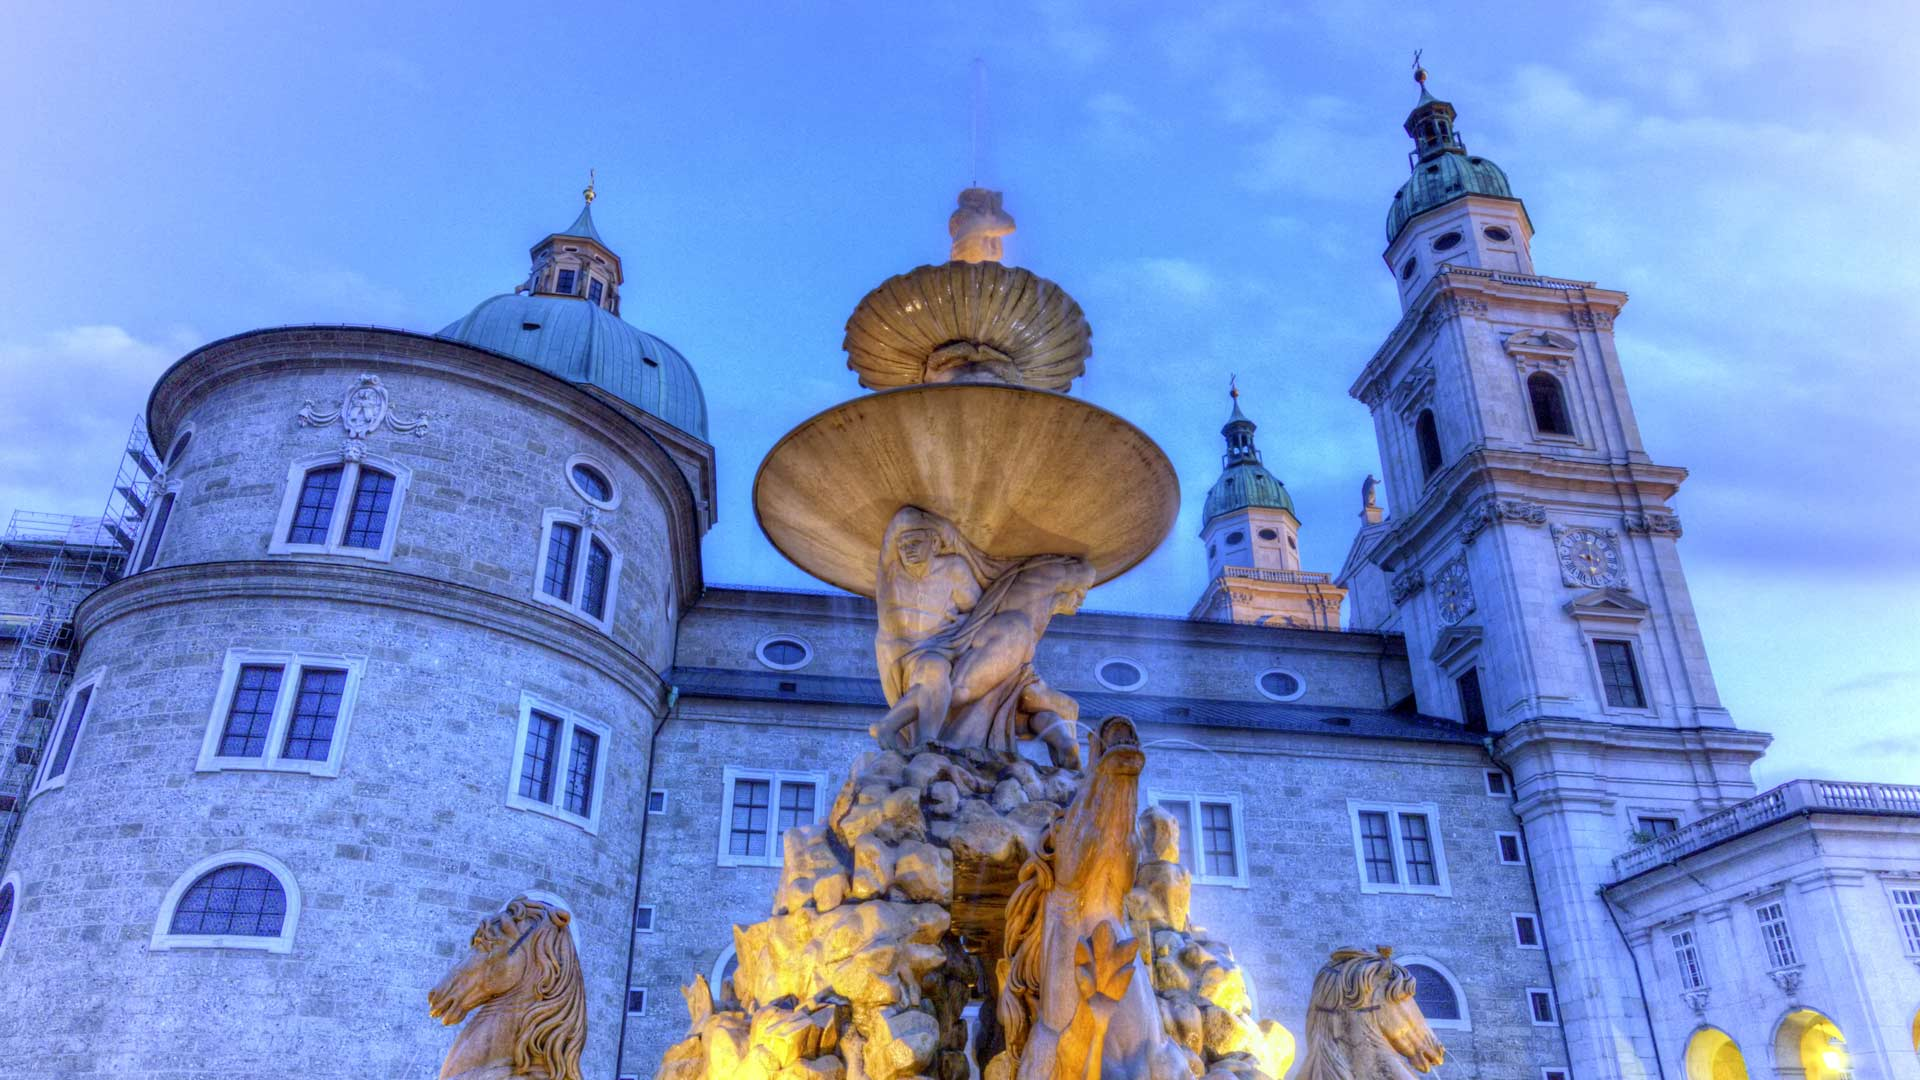 Fountain and cathedral at the Residenzplatz in Salzburg, Austria